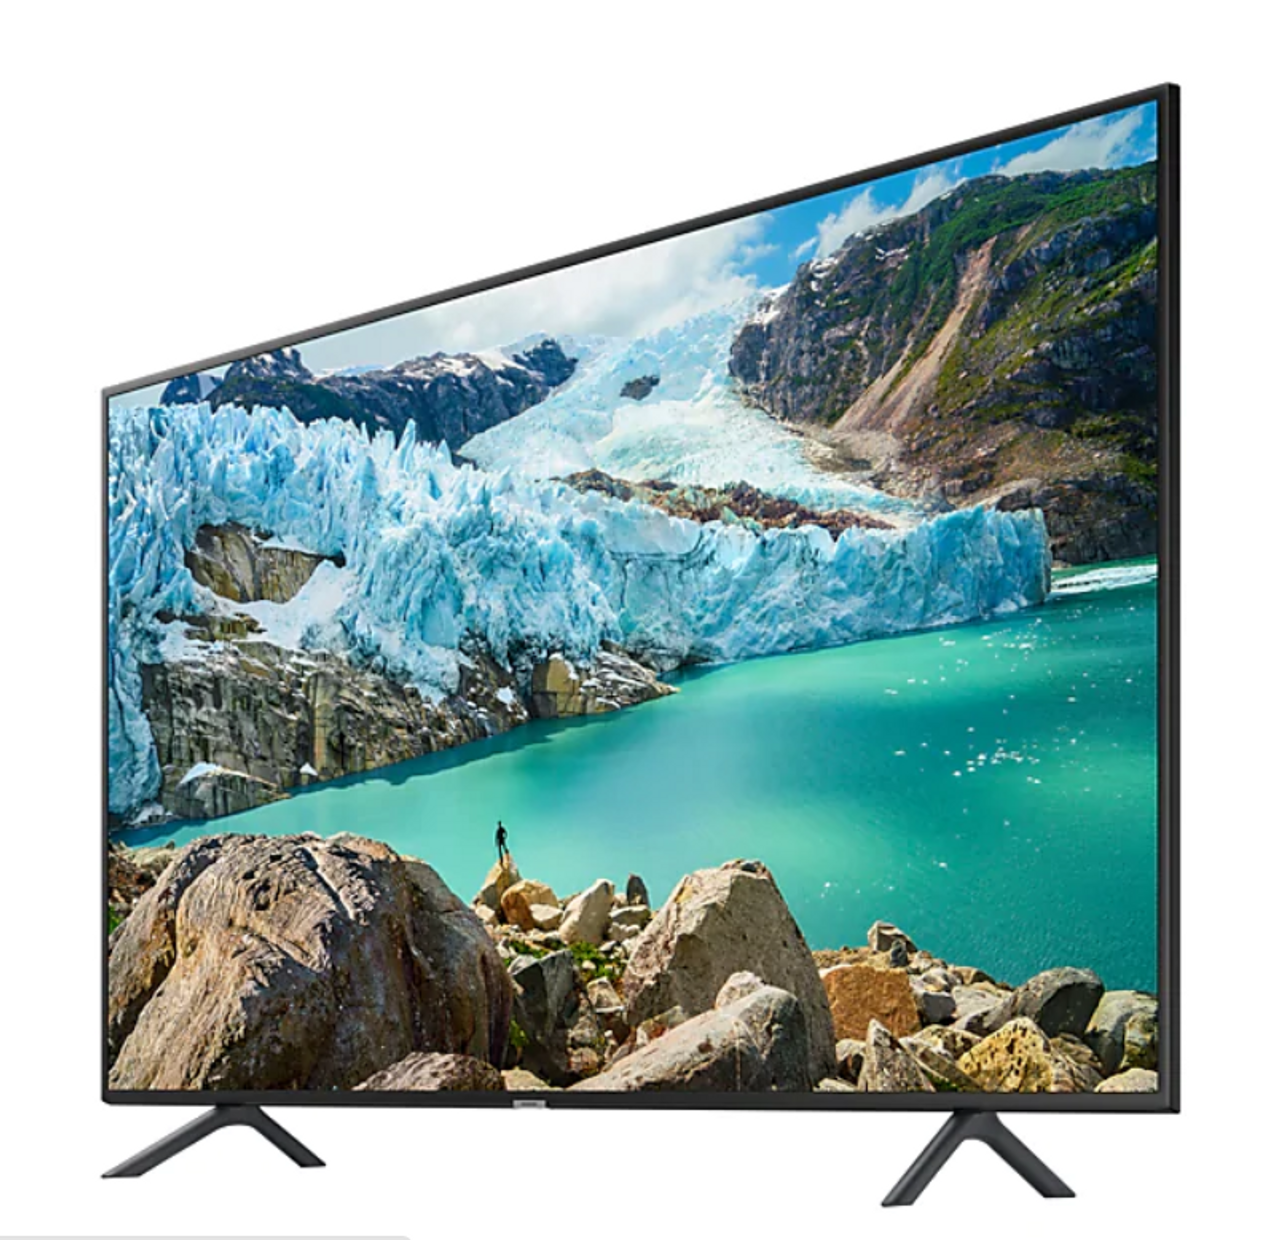 "Samsung UA75RU7100 Series 7 75"" RU7100 4K UHD TV - NEW MODEL AVAILABLE"